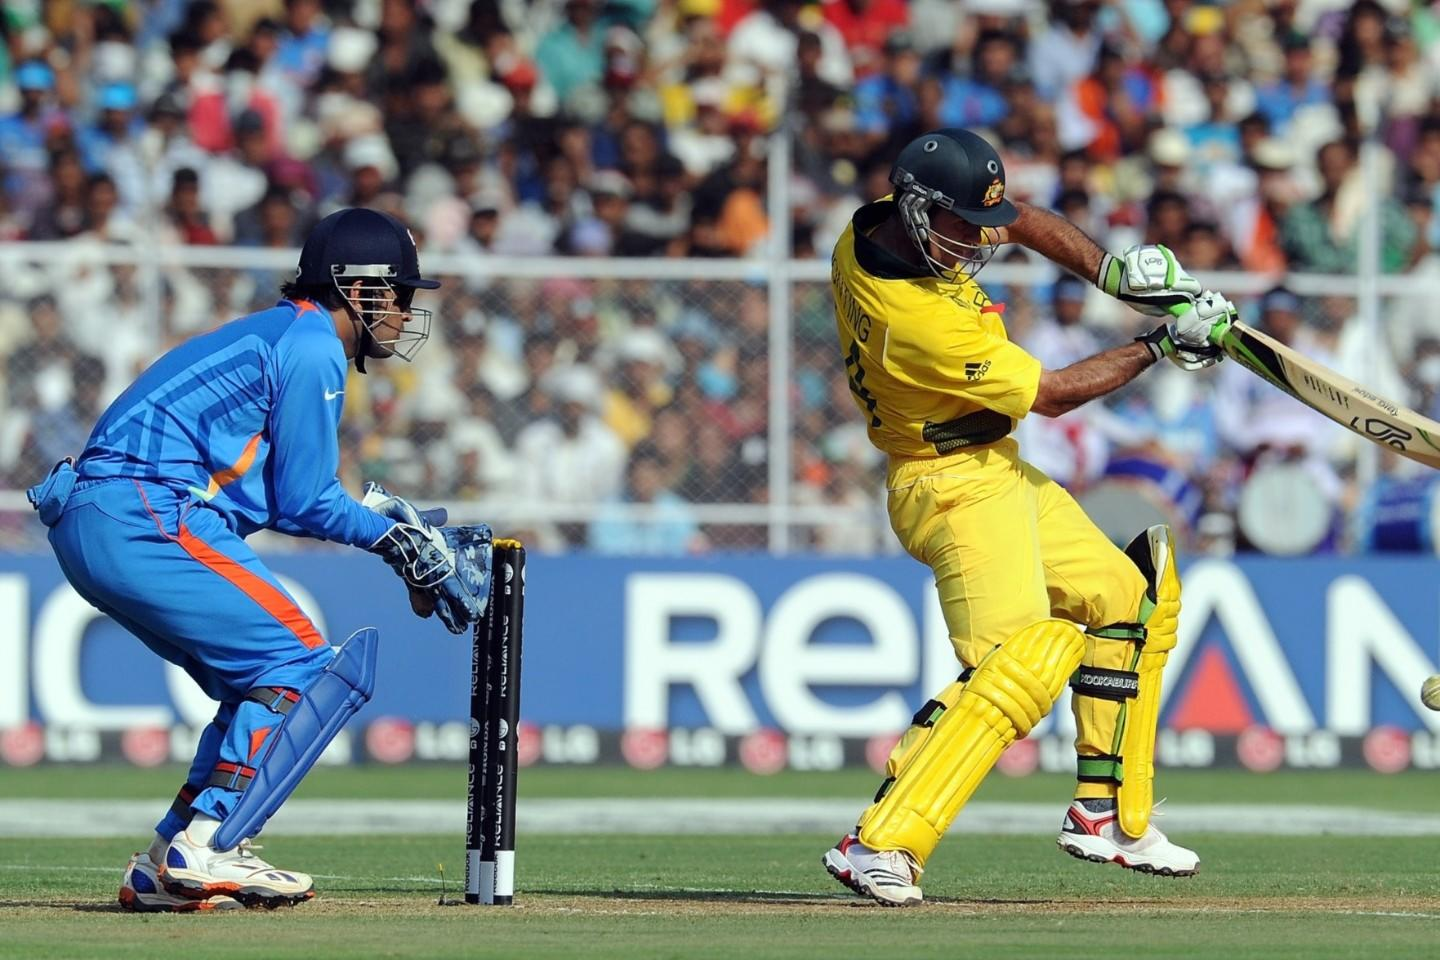 Cricket World Cup 2019 Tickets Buy Or Sell Cricket World